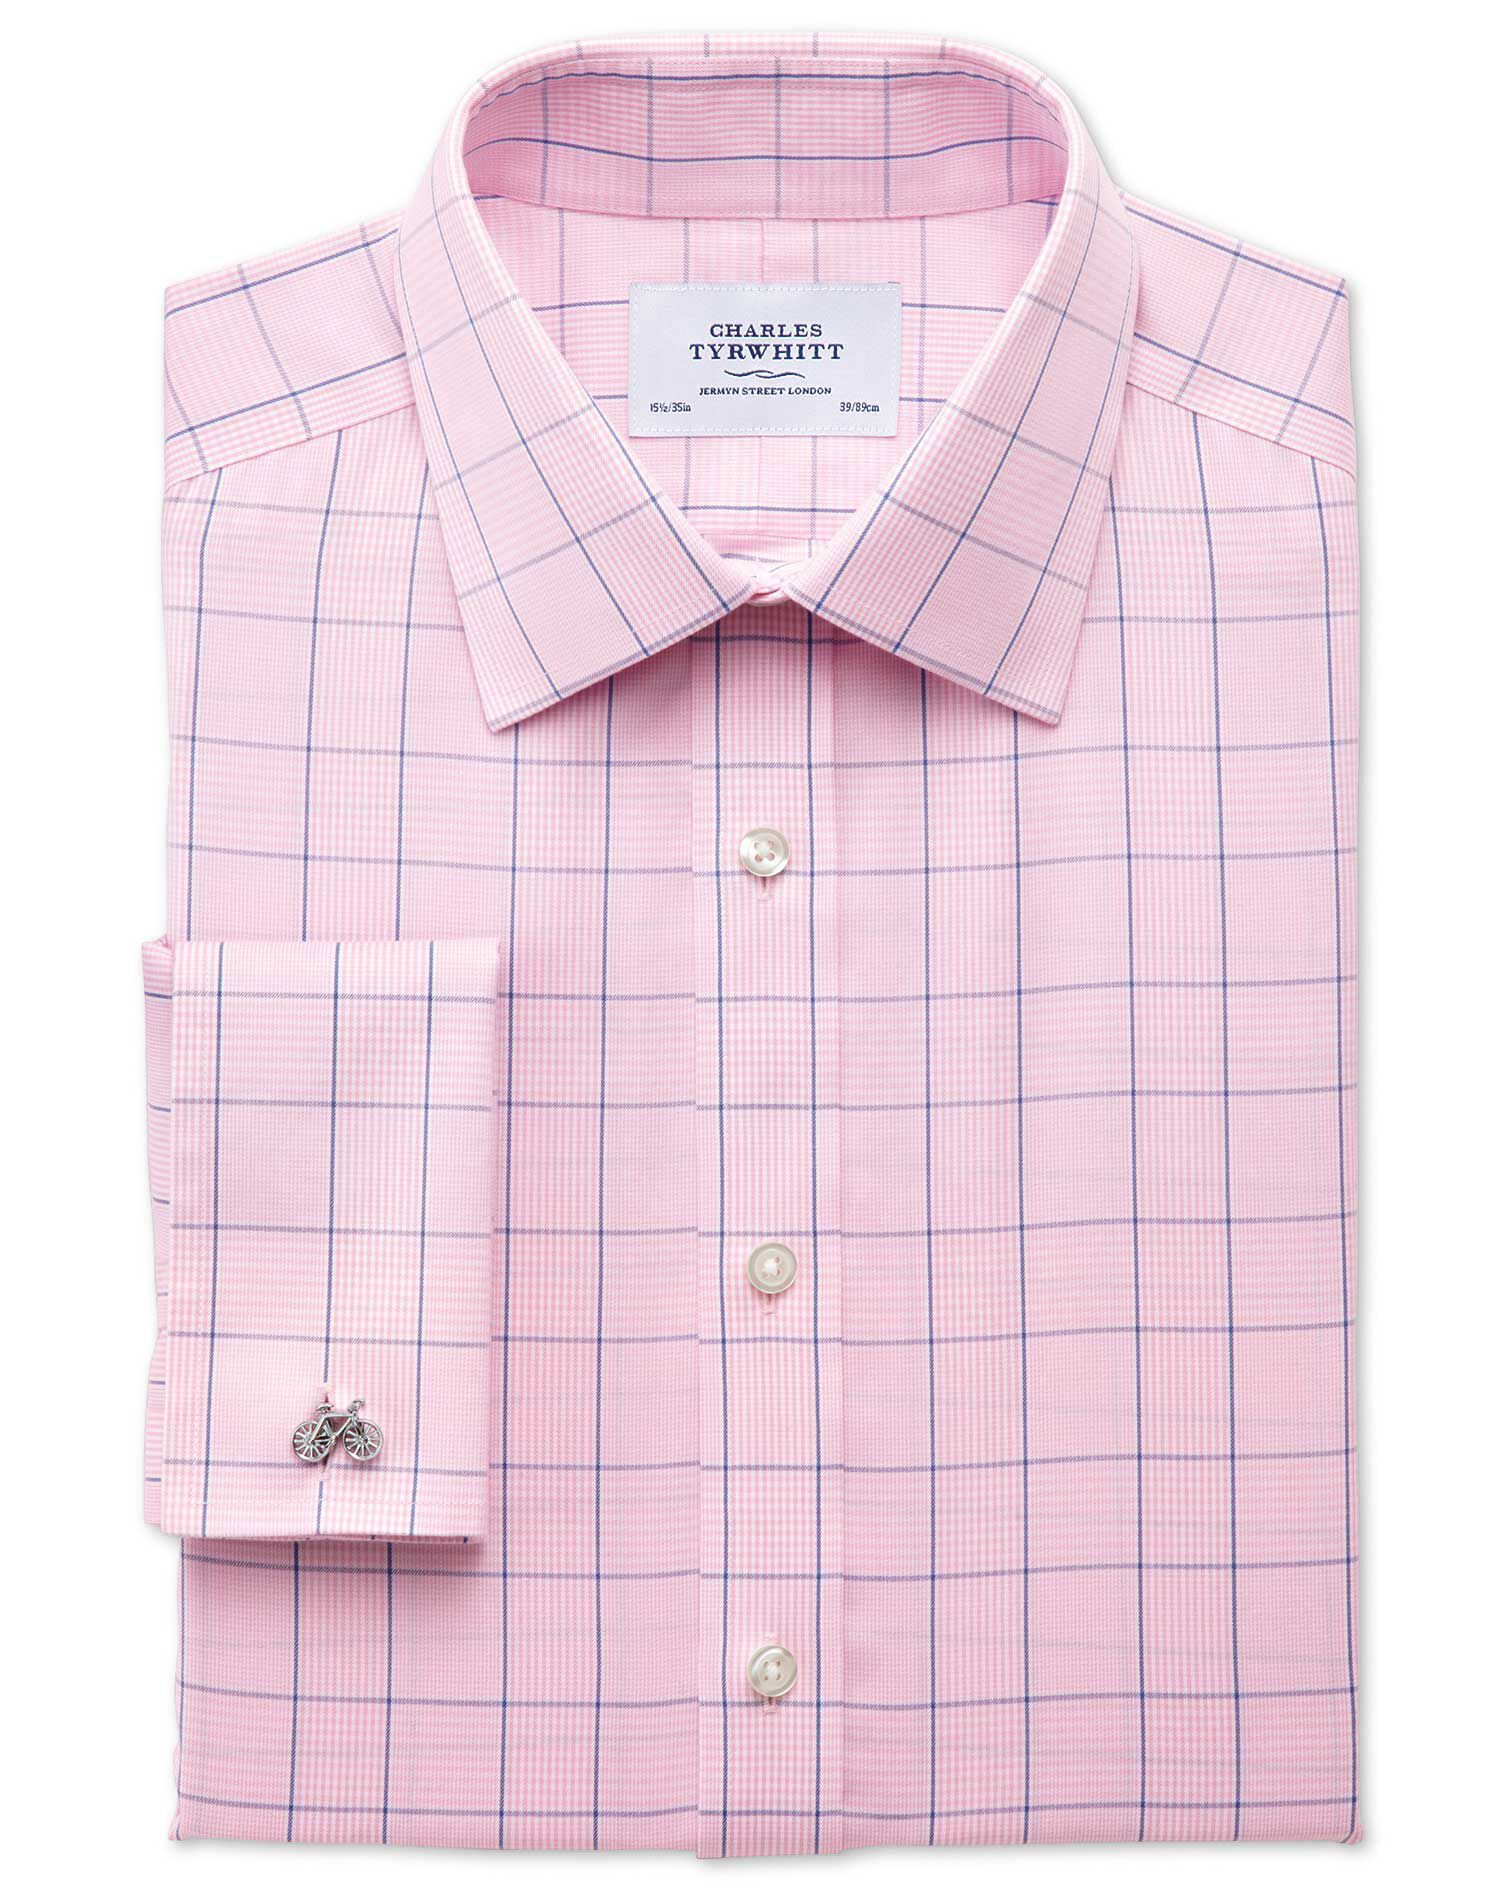 Slim Fit Non-Iron Prince Of Wales Check Pink and Blue Cotton Formal Shirt Single Cuff Size 16/33 by